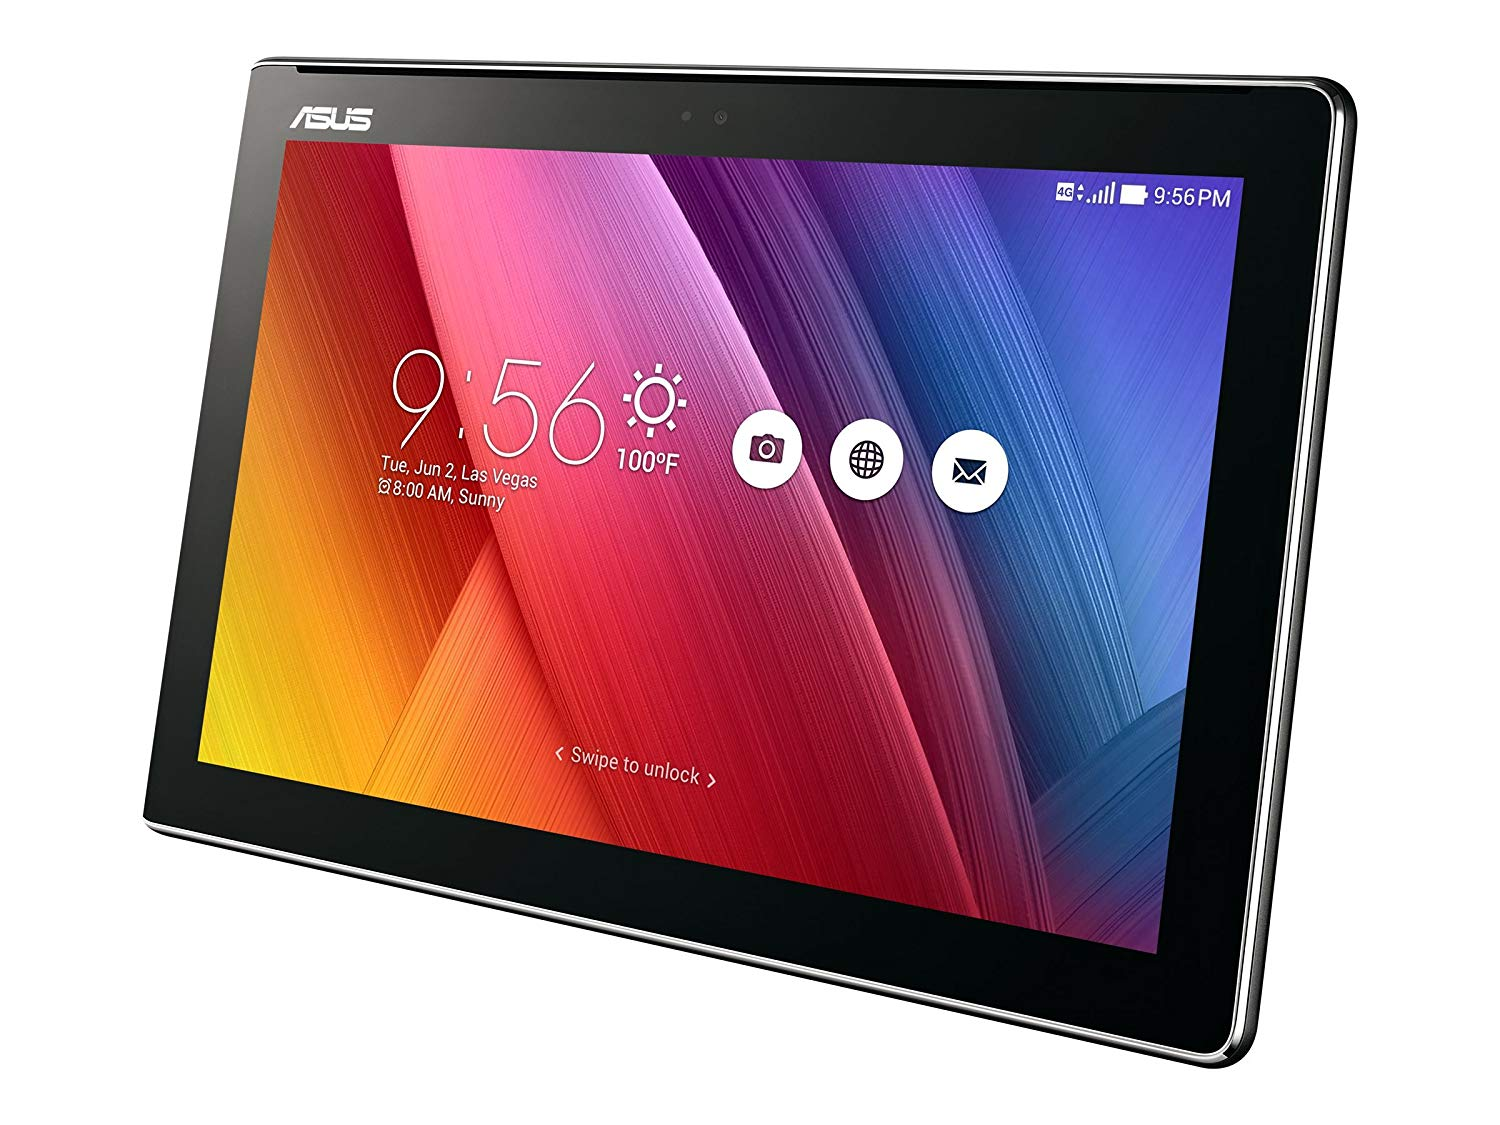 asus zenpad tablet black usywxkl accent tablette computers accessories red metal end table ashley furniture tables coffee bedroom auckland target butterfly lighting modern miami